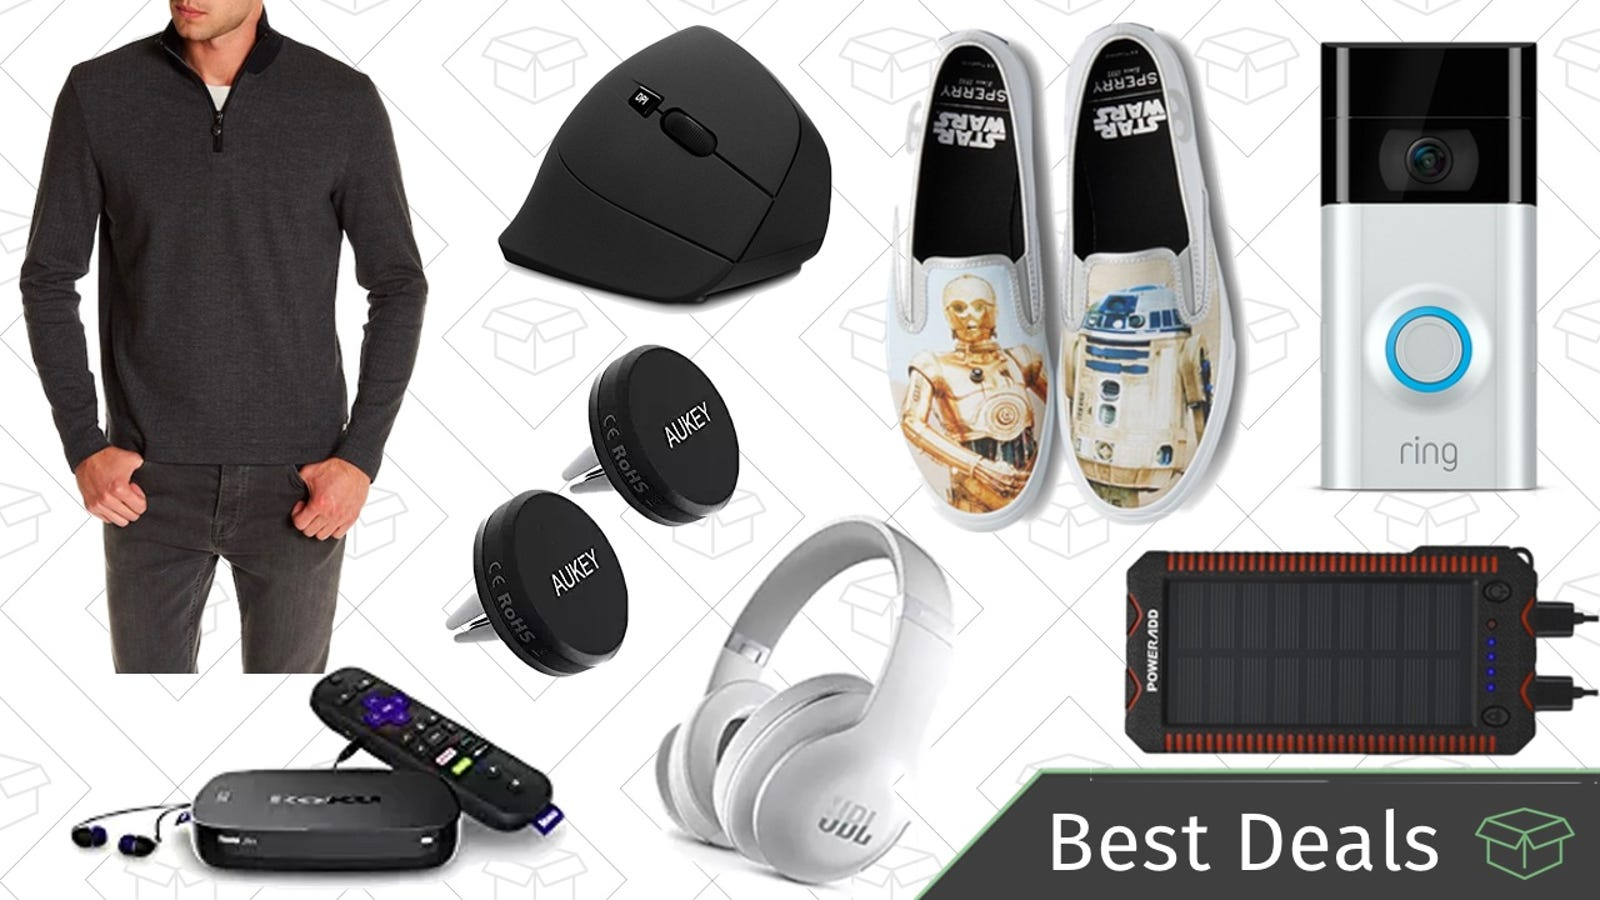 Fridays Best Deals Clear The Rack Noise Canceling Headphones Pics Photos Technology Integrated Circuit Fresh New Hd Wallpaper Ring Doorbell And More